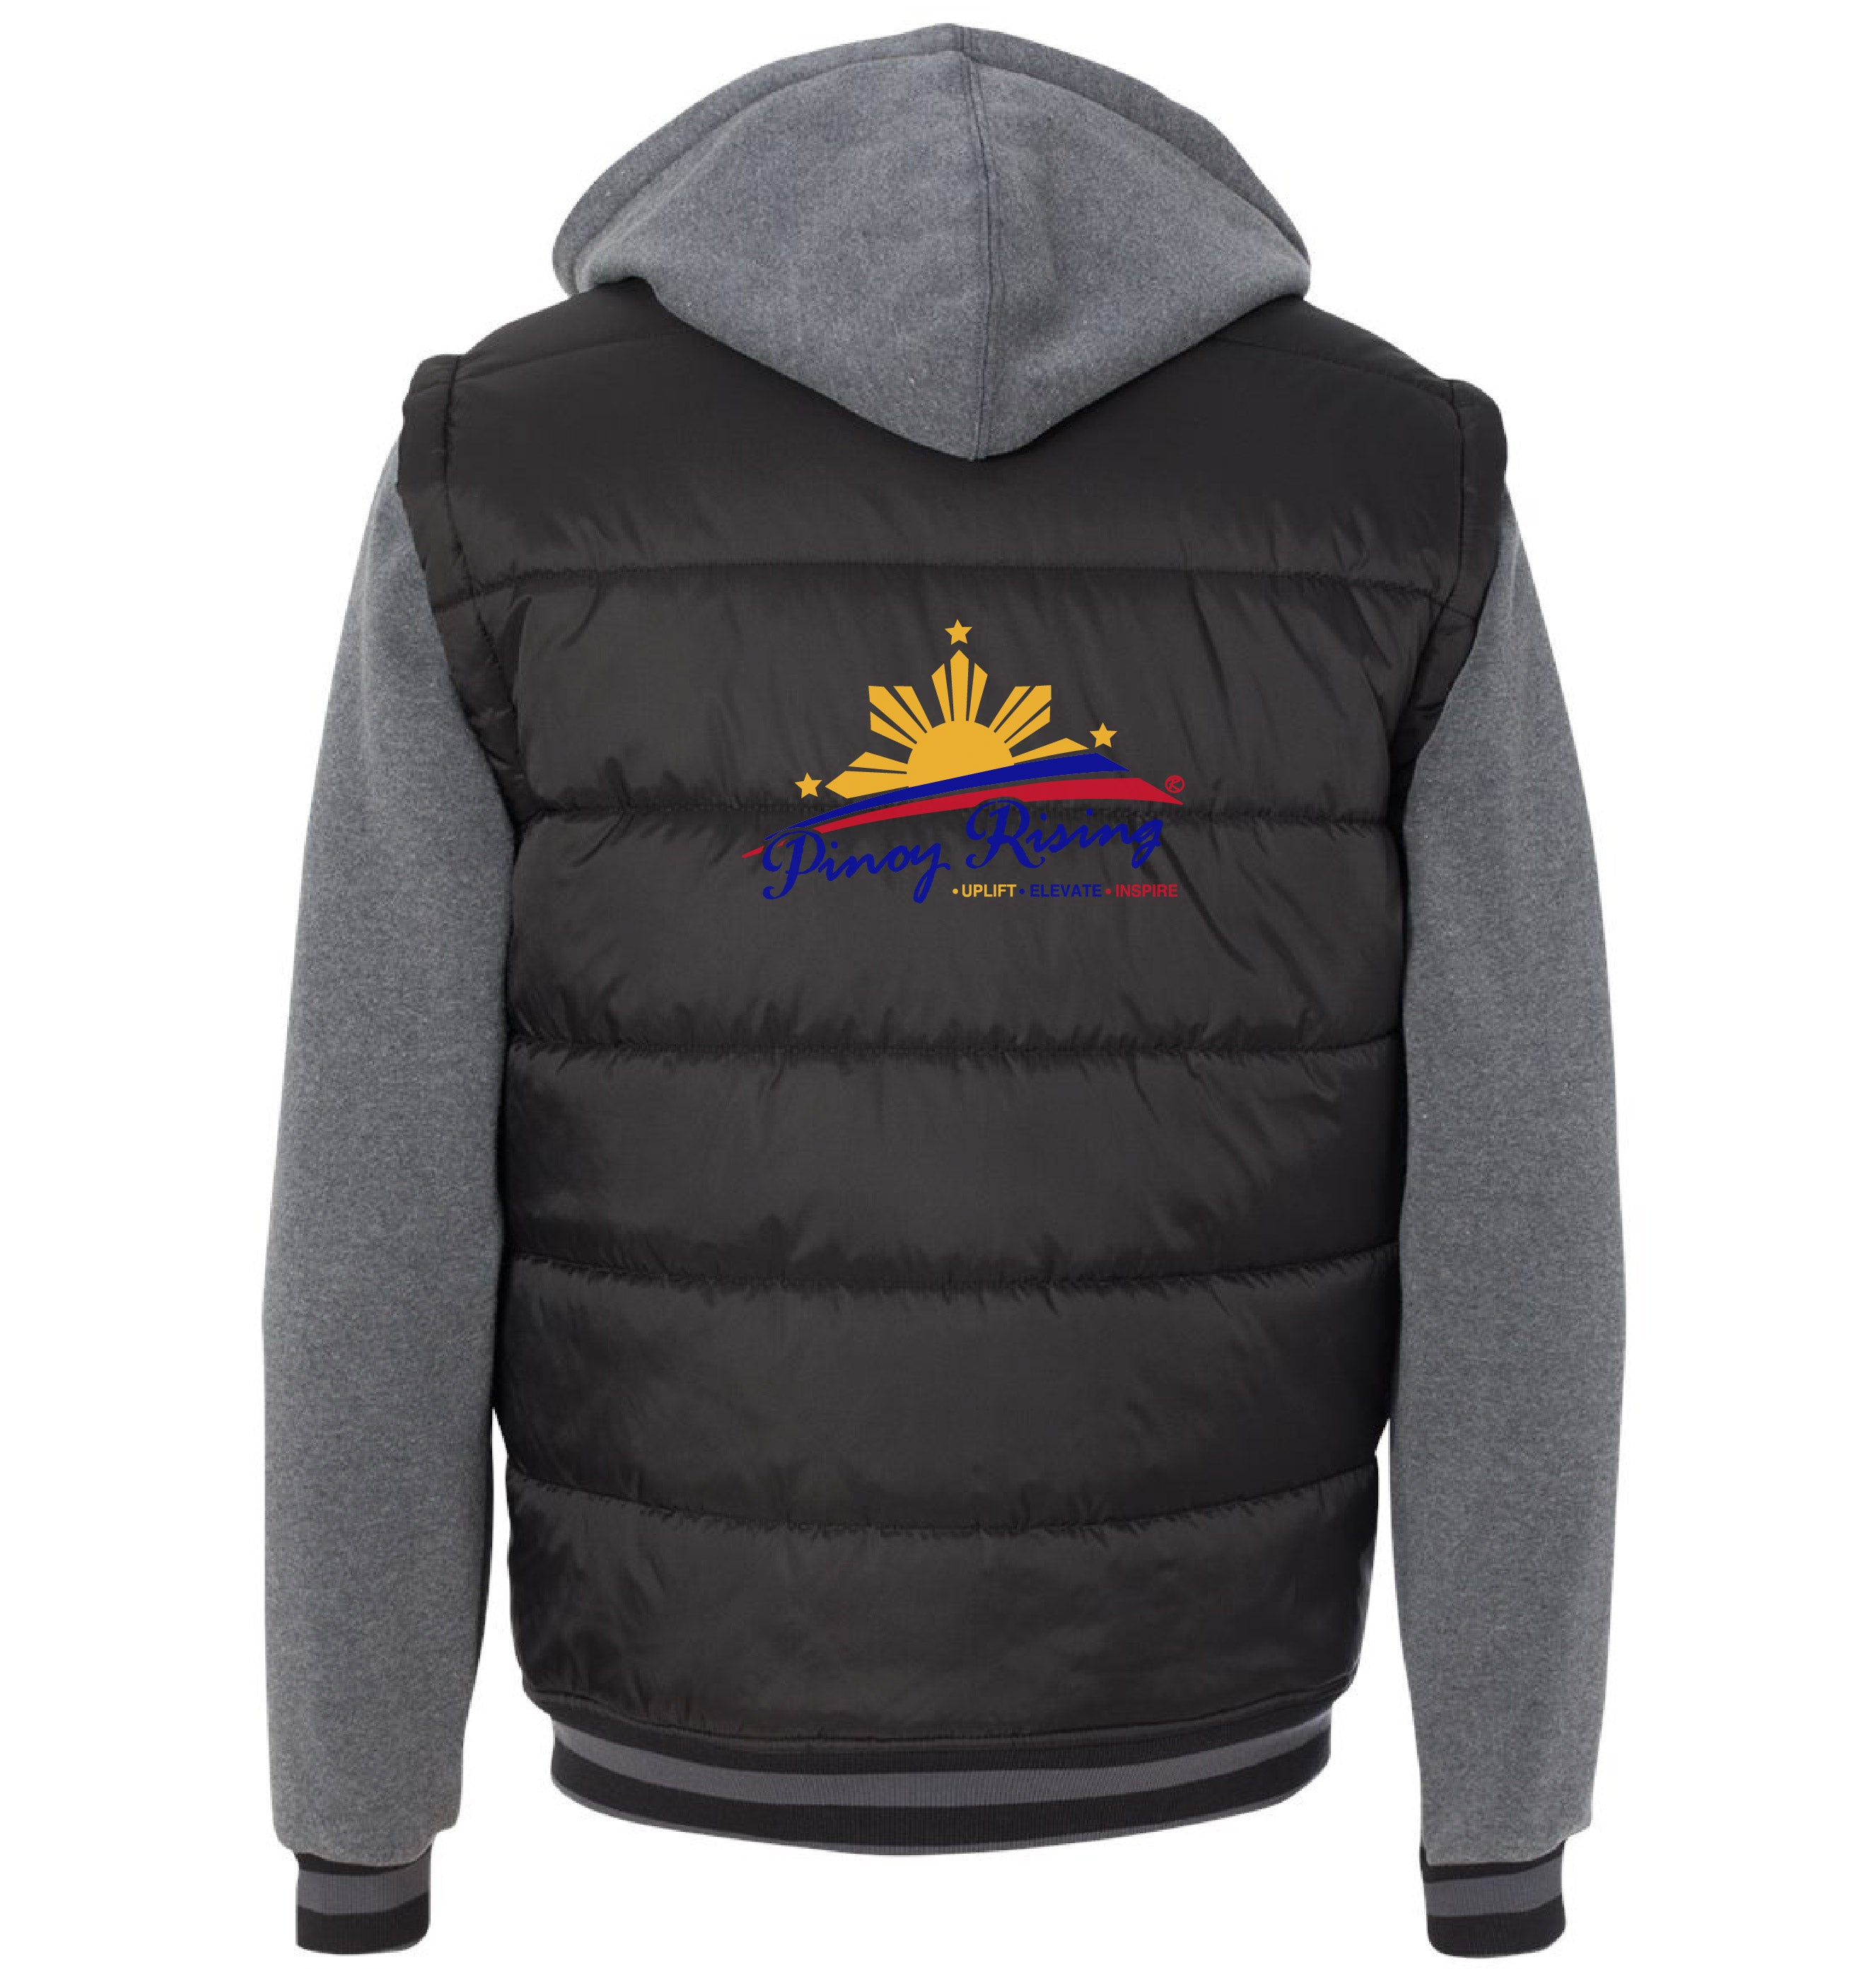 Filipino Jacket Puff Vest with Fleece Sleeves